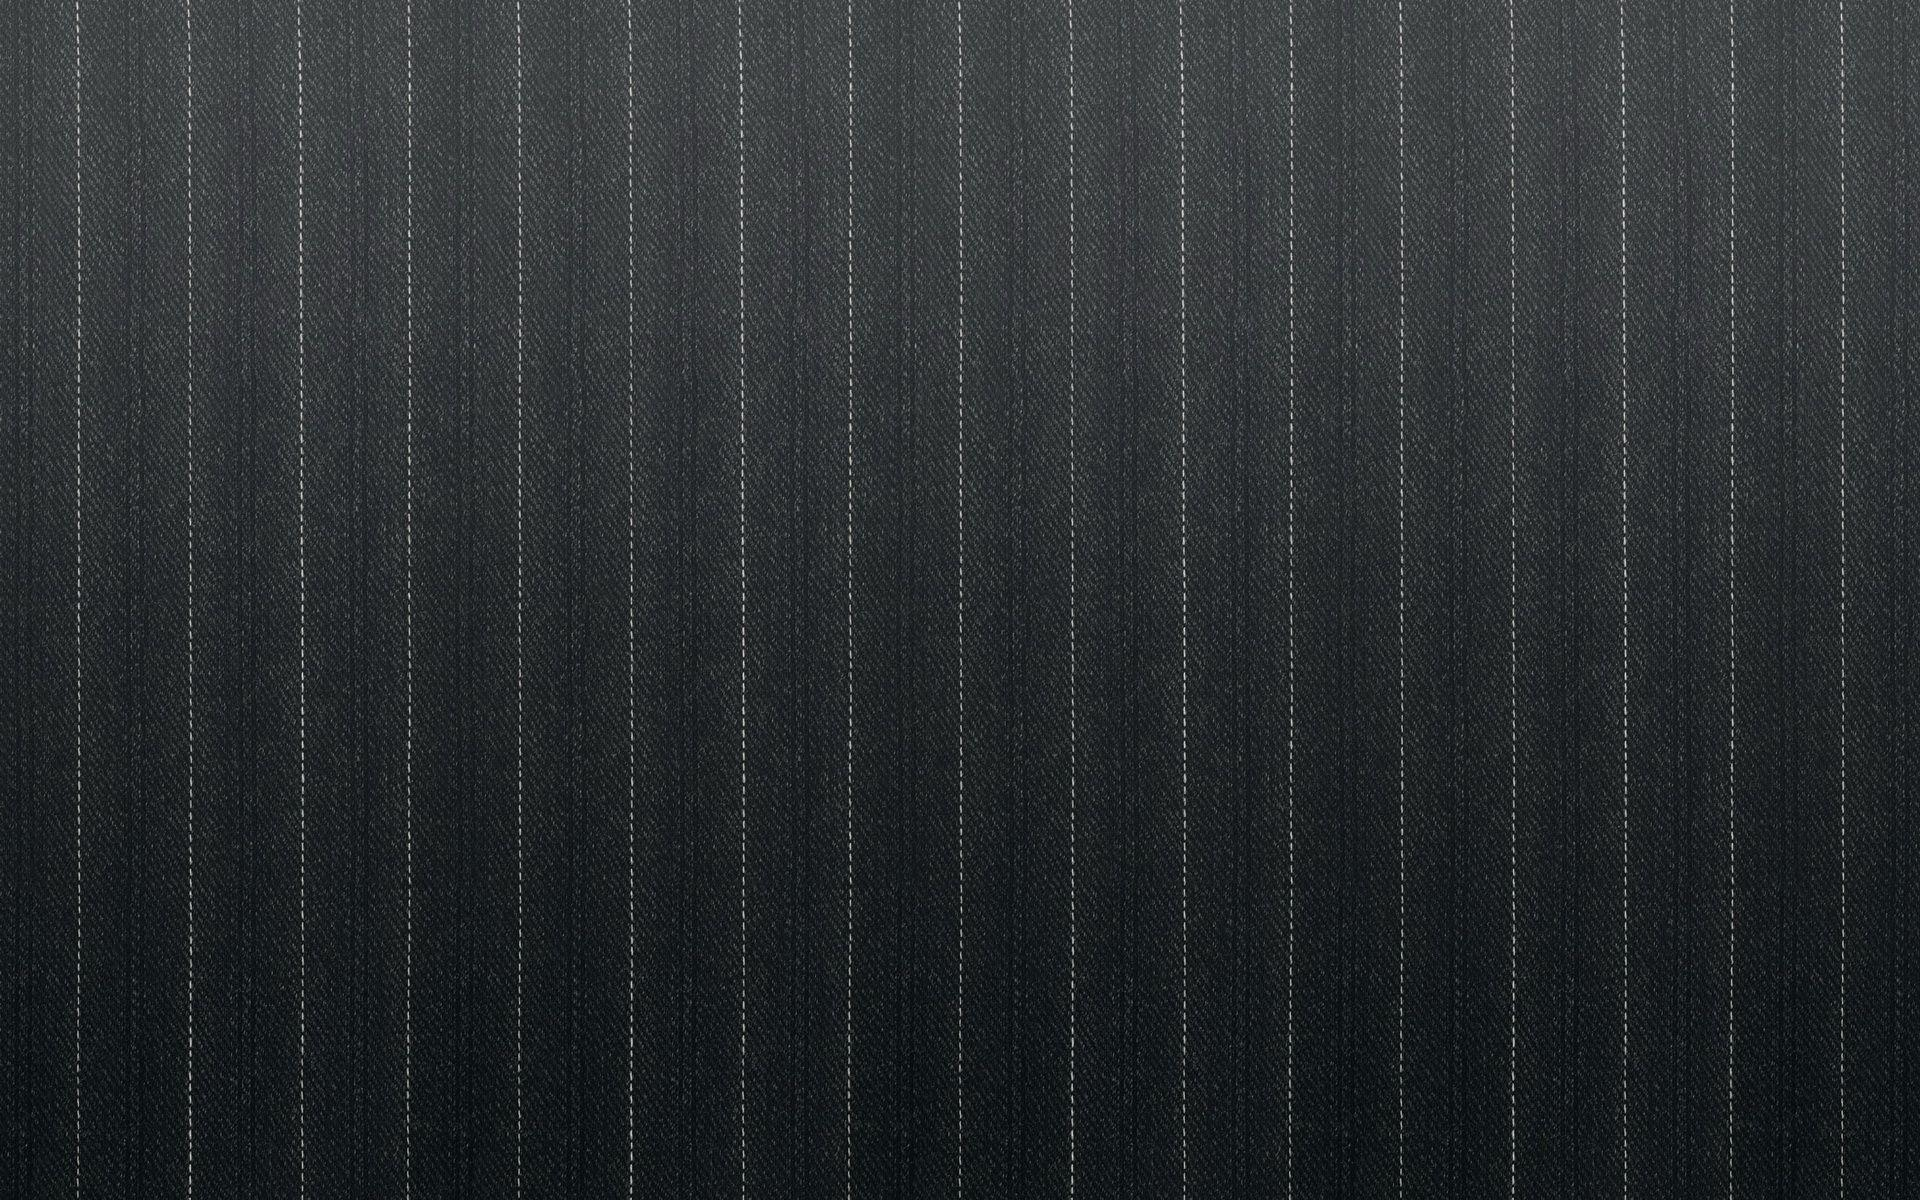 Mac Os X Wallpapers